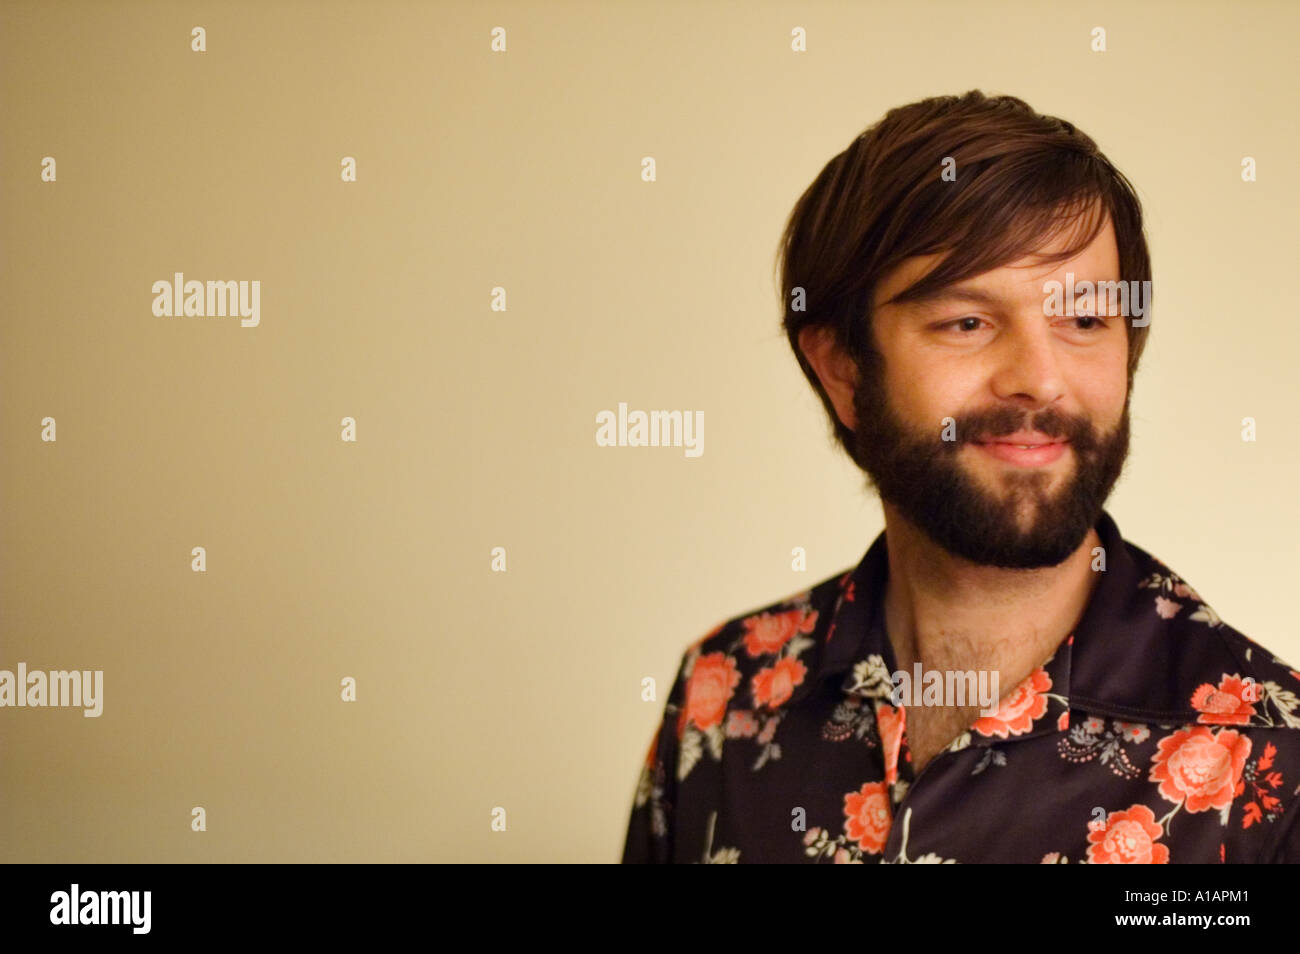 Portraits, Man - Stock Image